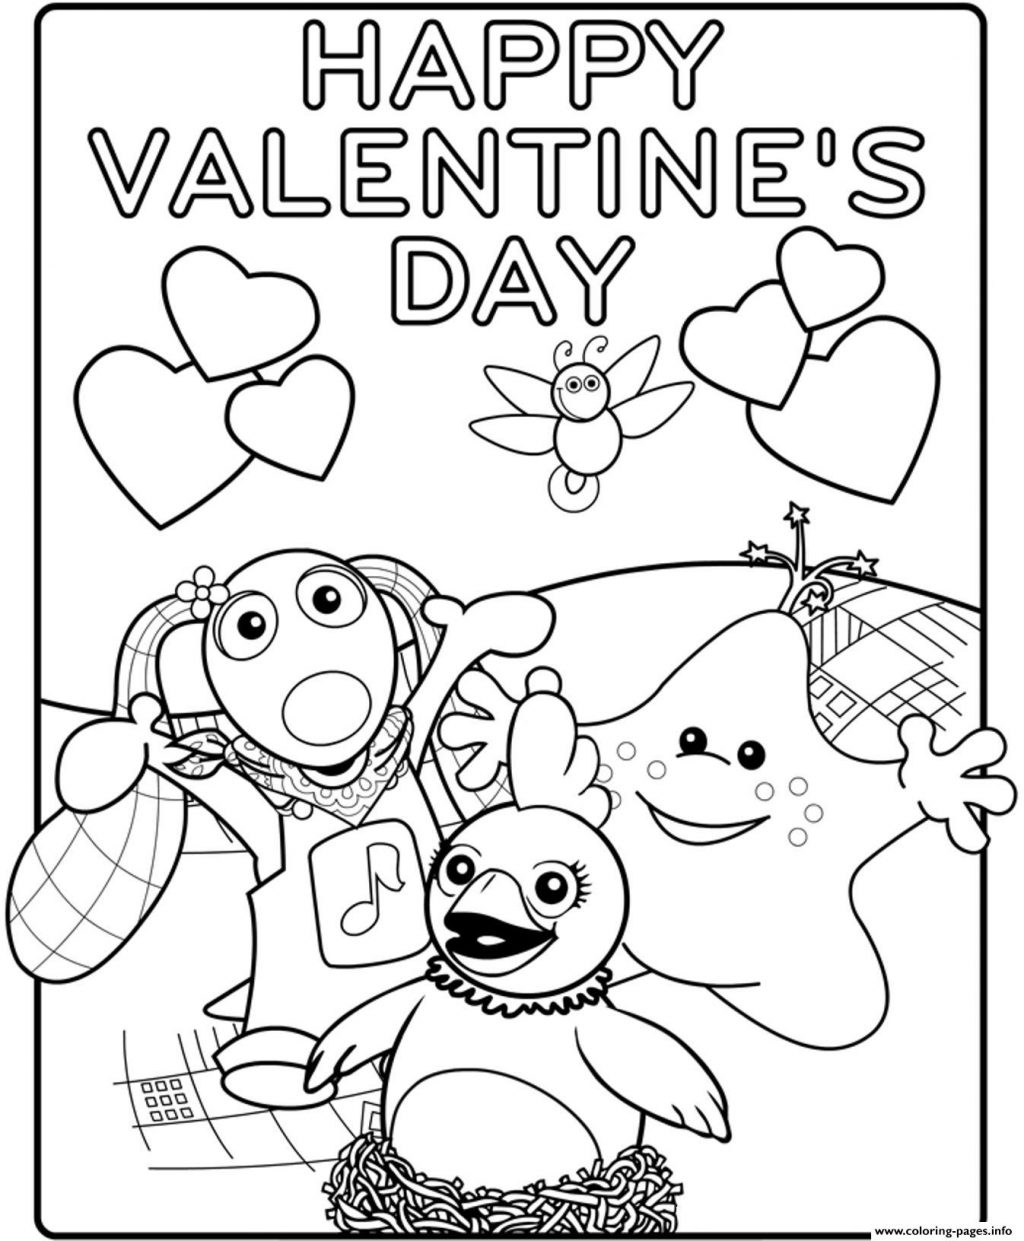 Valentine Coloring Book Pages Coloring Page 1461709648kids Happy Valentines Day S18b3a Coloring